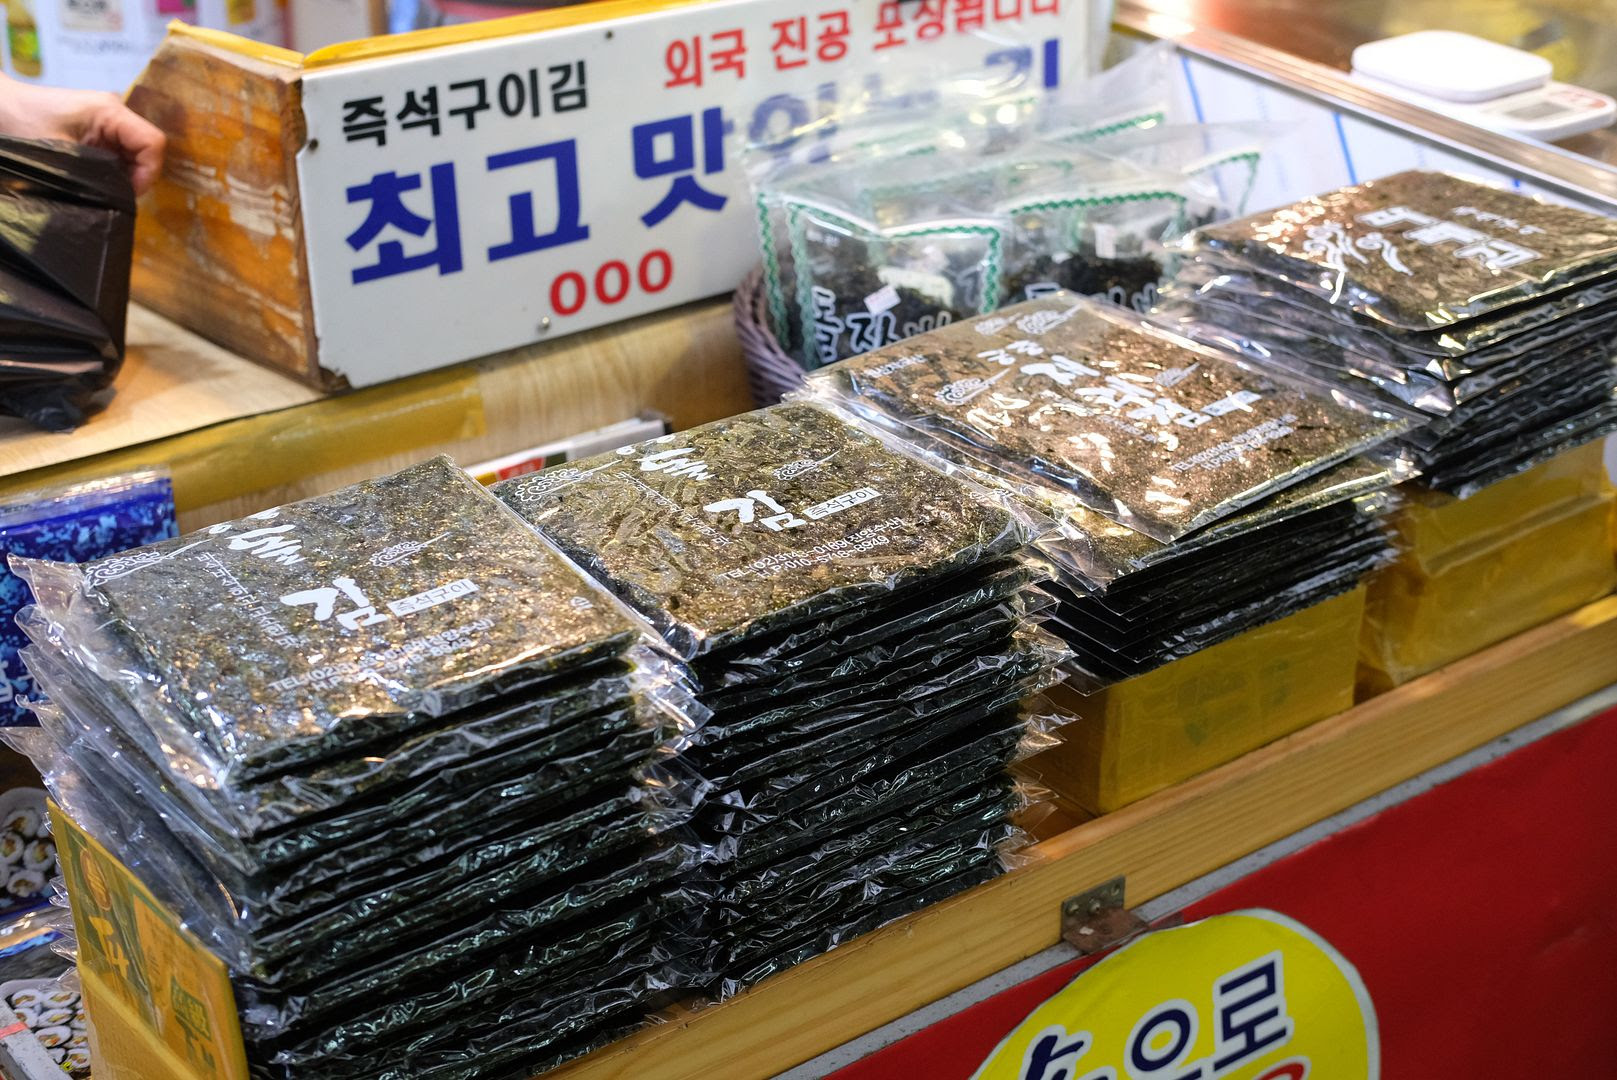 photo Mangwon Market Seoul 21.jpg